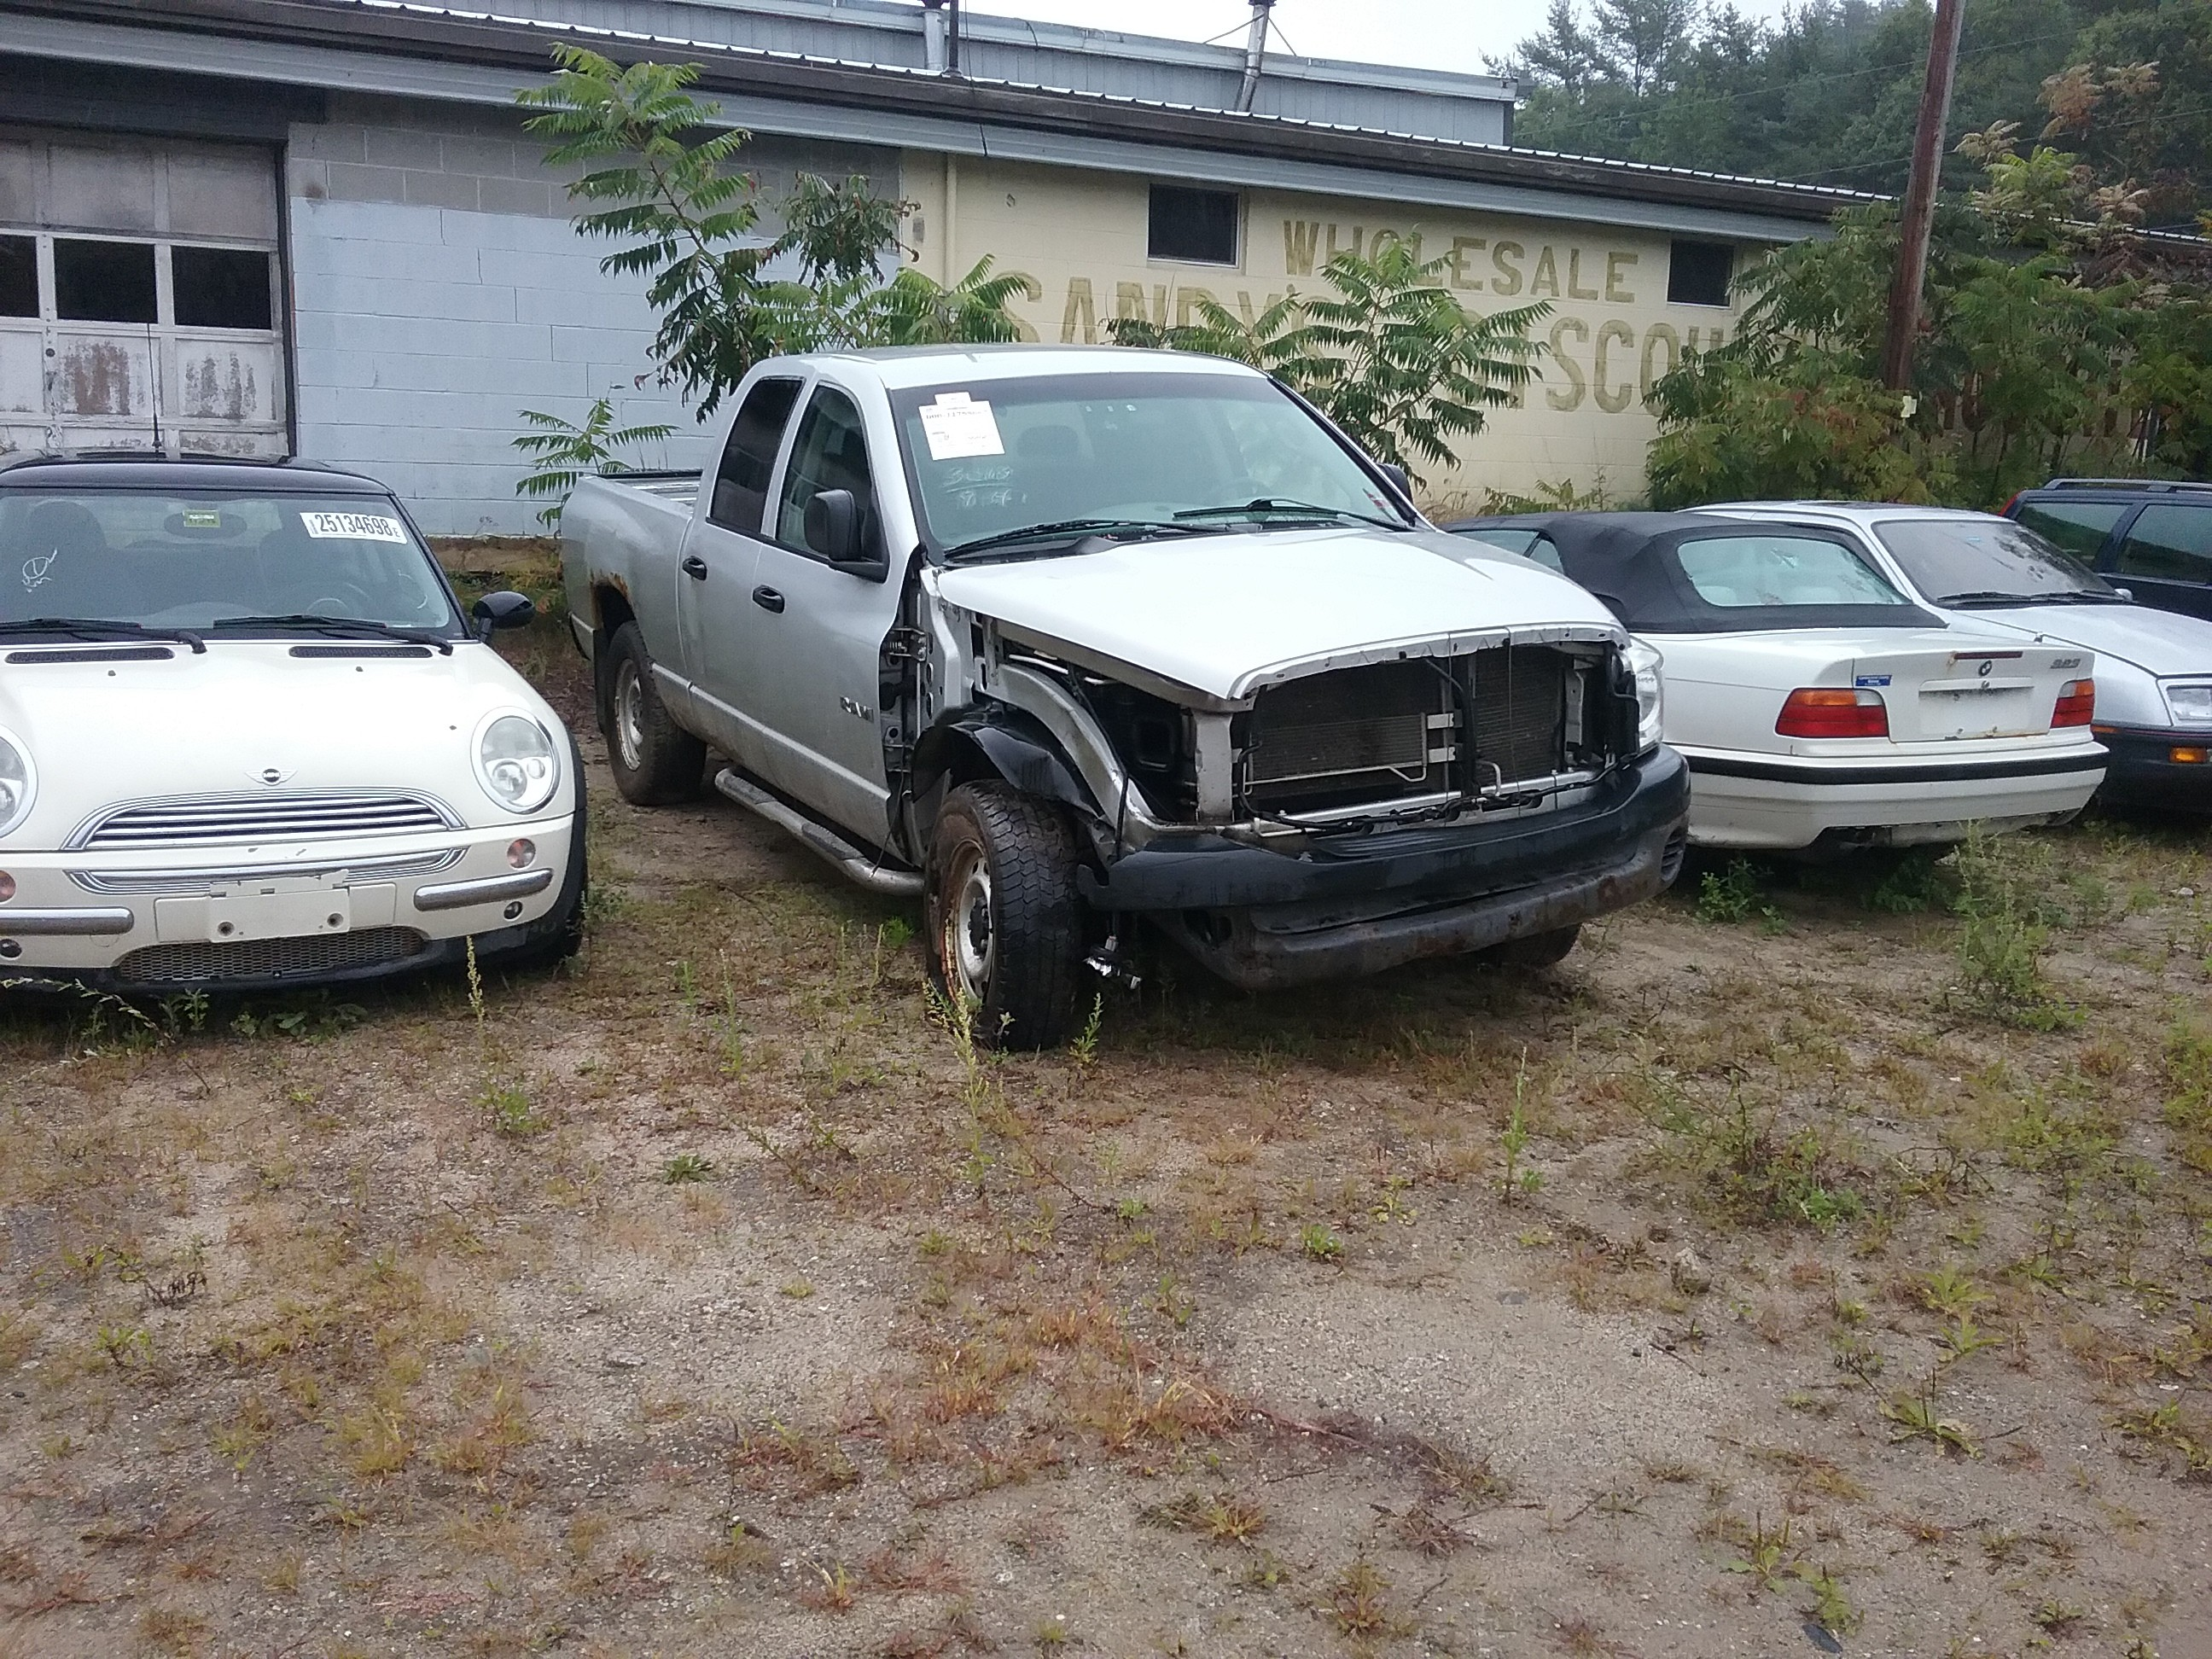 Lashin's Auto Salvage - Wide Selection, Helpful Service and